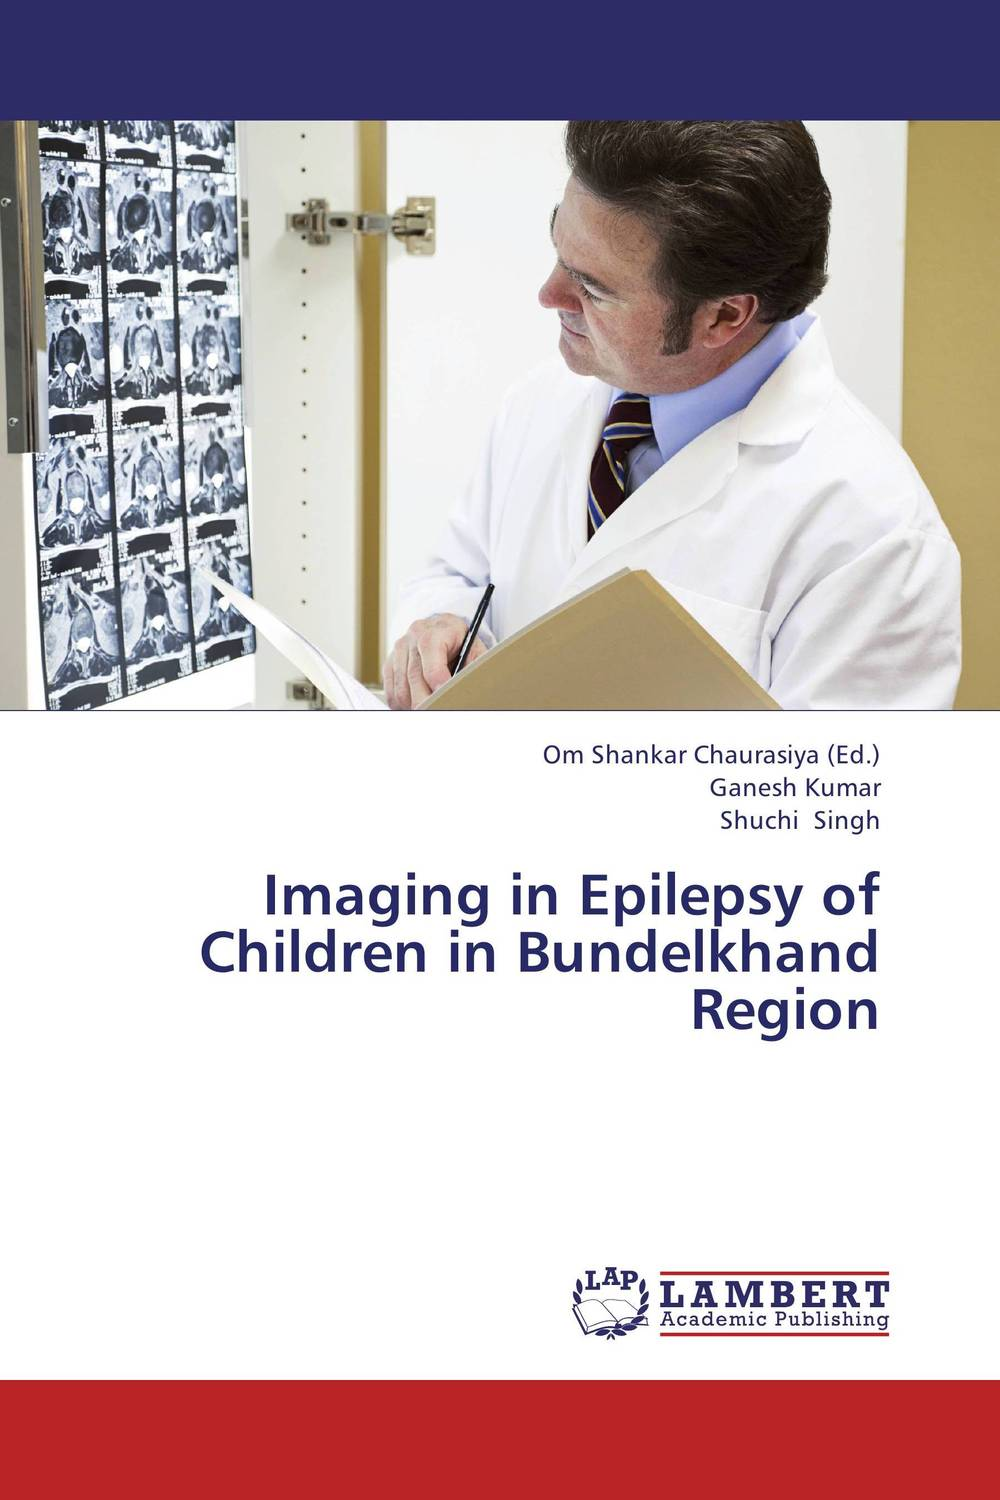 Imaging in Epilepsy of Children in Bundelkhand Region epilepsy in children psychological concerns